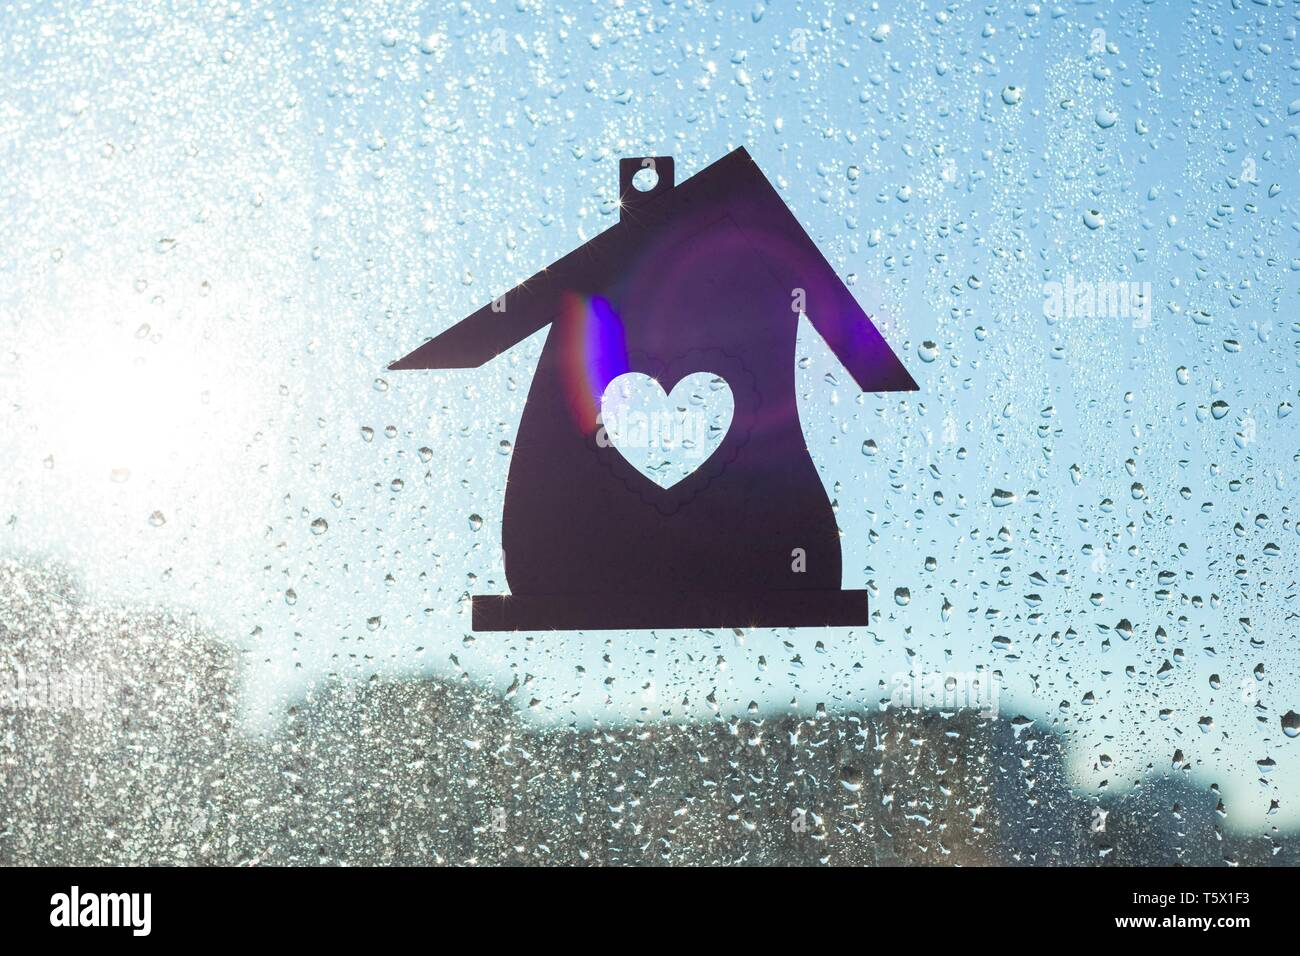 Home Sweet Home. Home symbol with a heart shape on a window background with sunny drops of rain - Stock Image